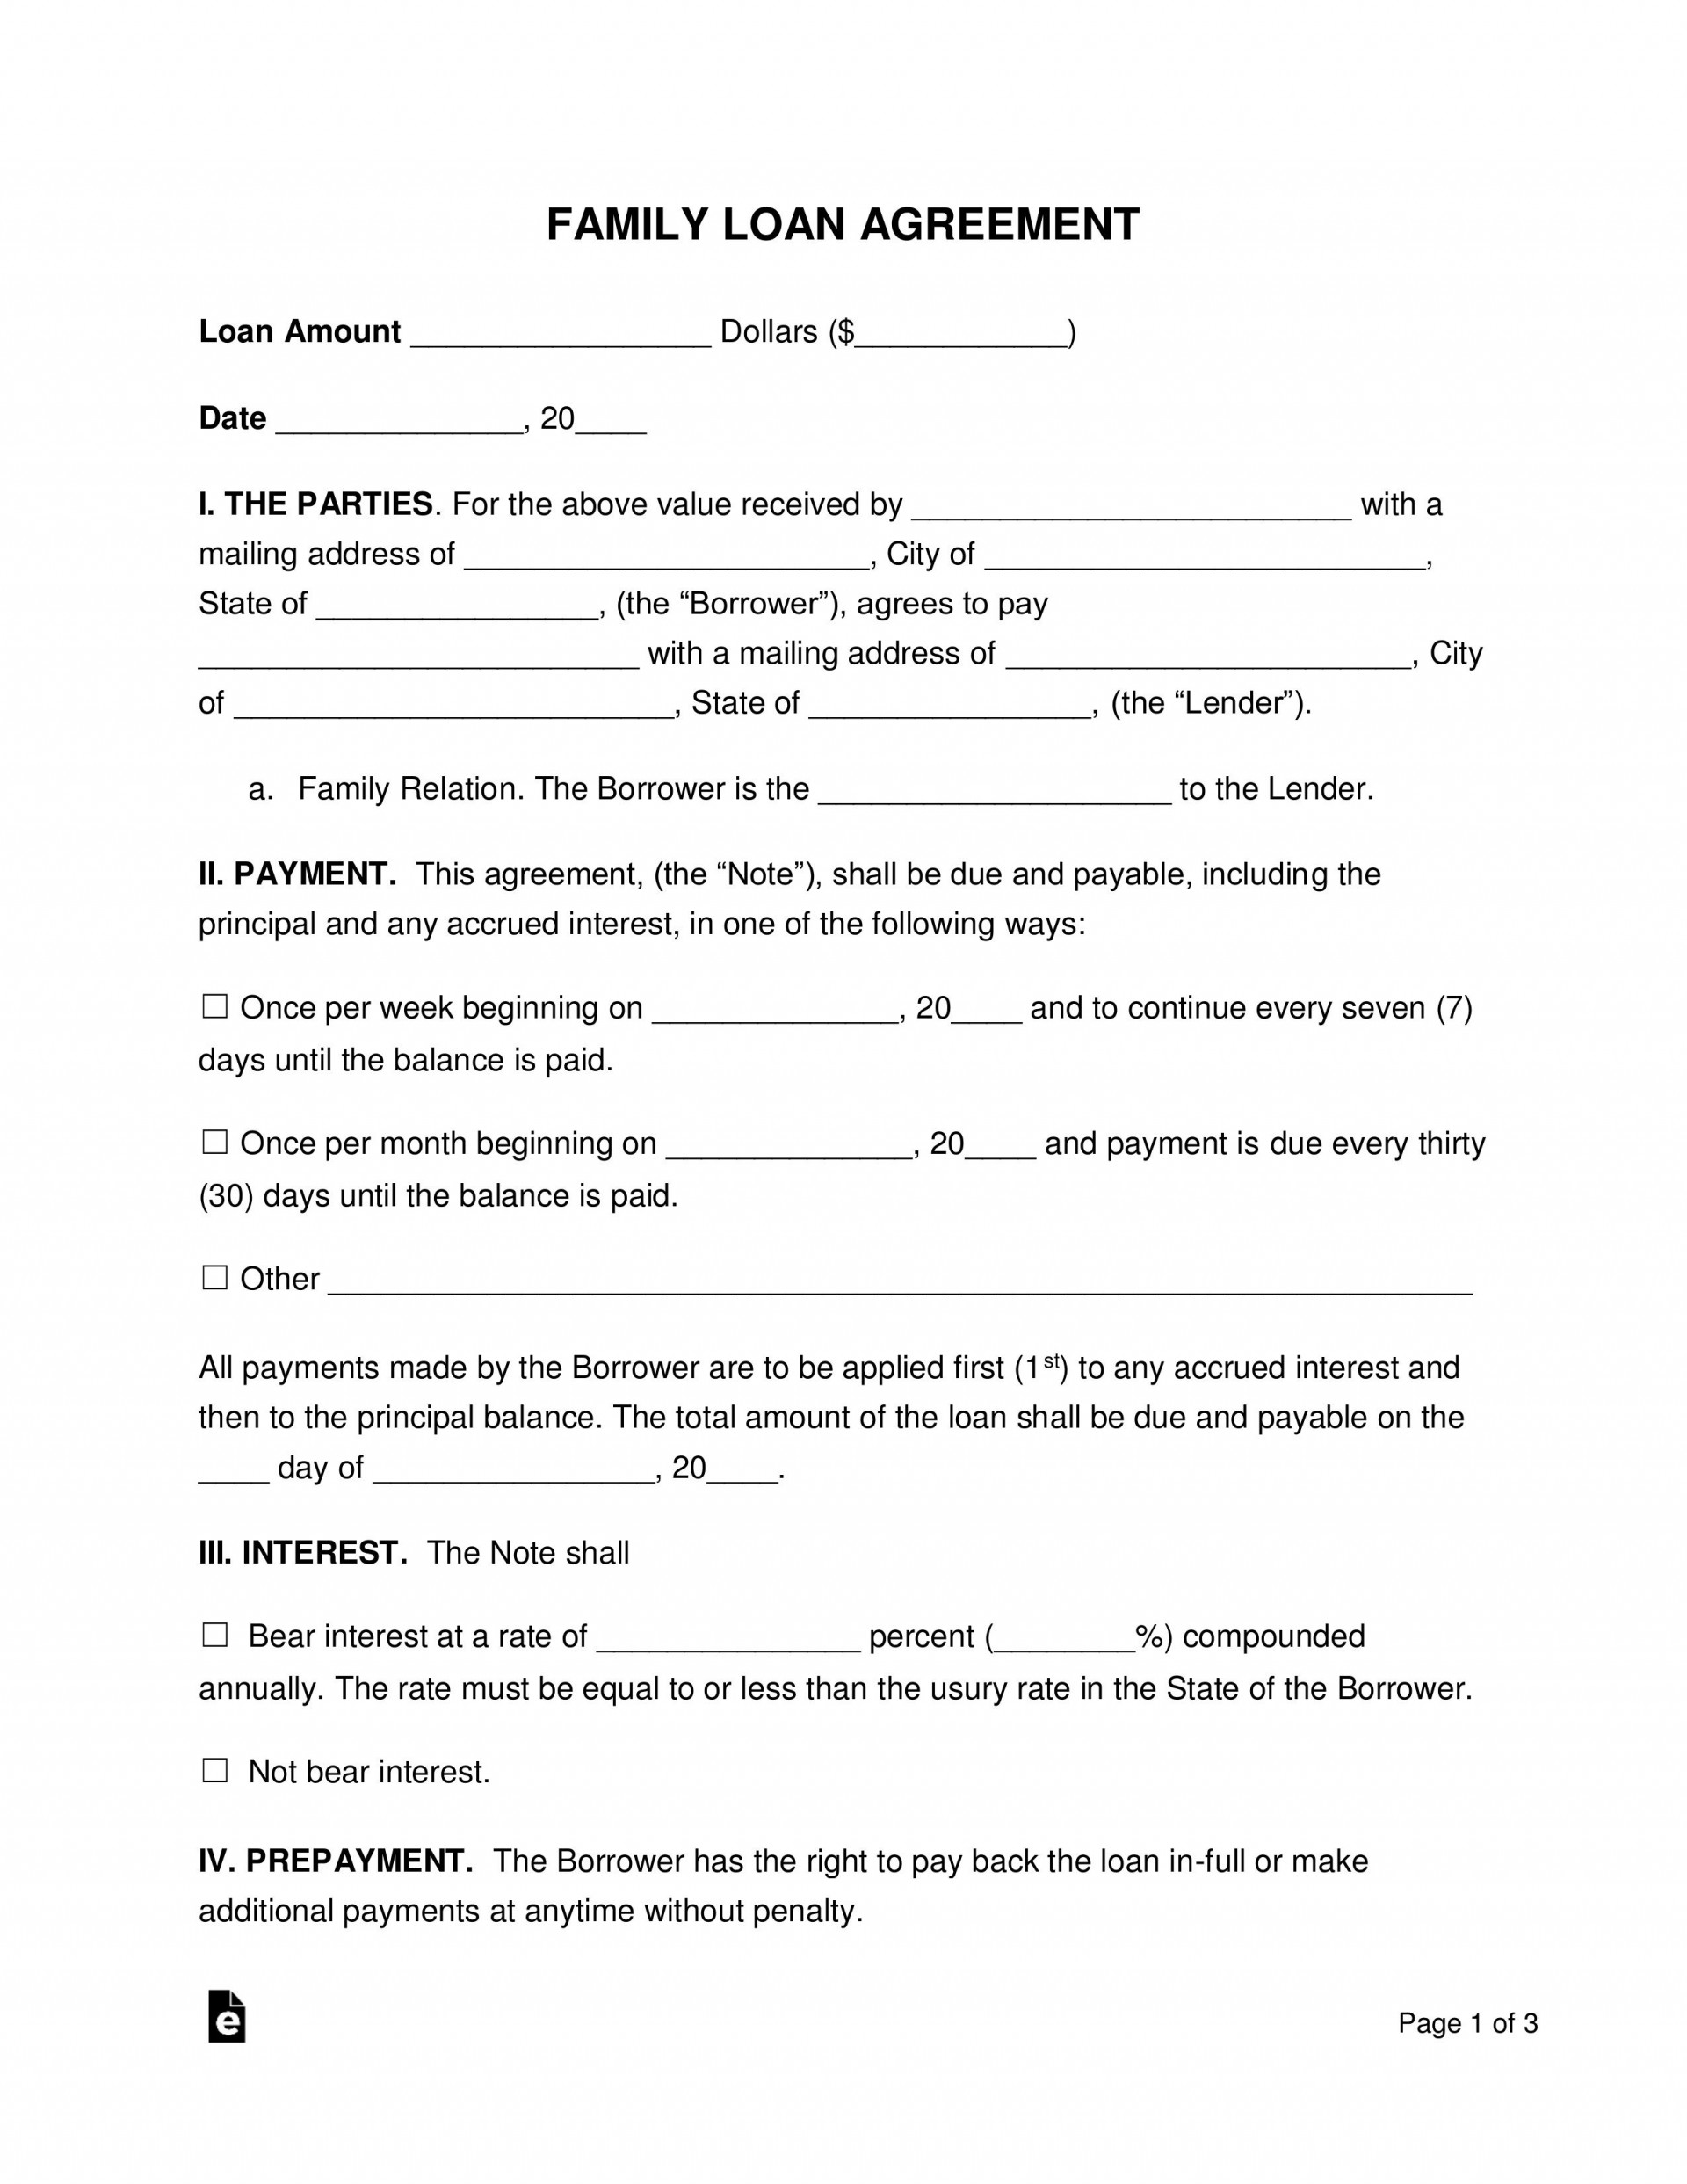 003 Awful Family Loan Agreement Template Idea  Nz Uk Free1920